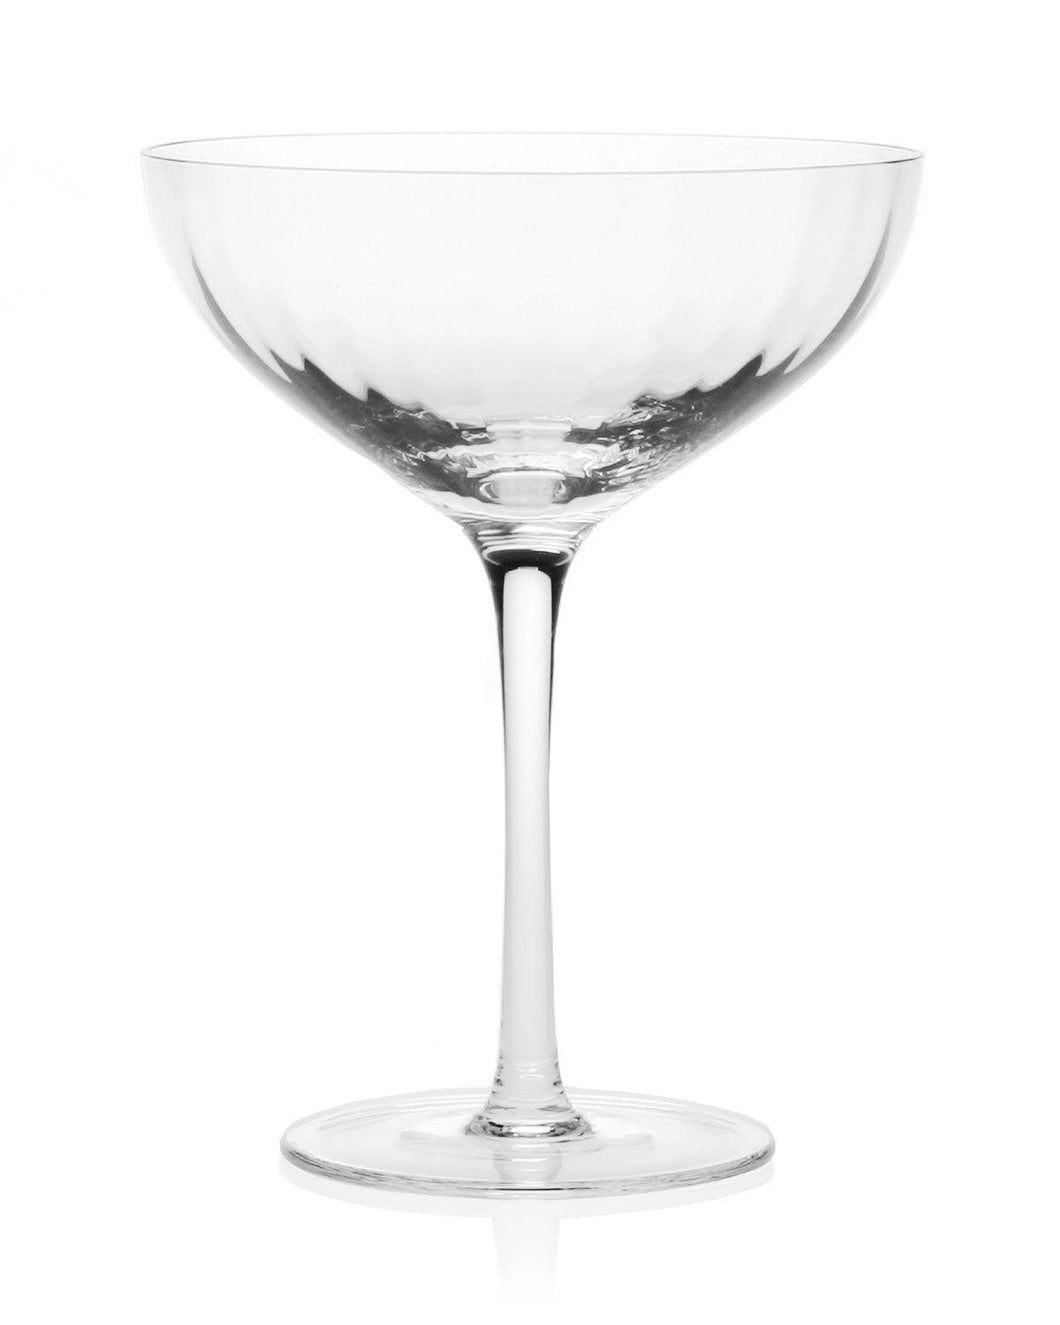 William Yeoward Corinne Cocktail/Coupe Glass